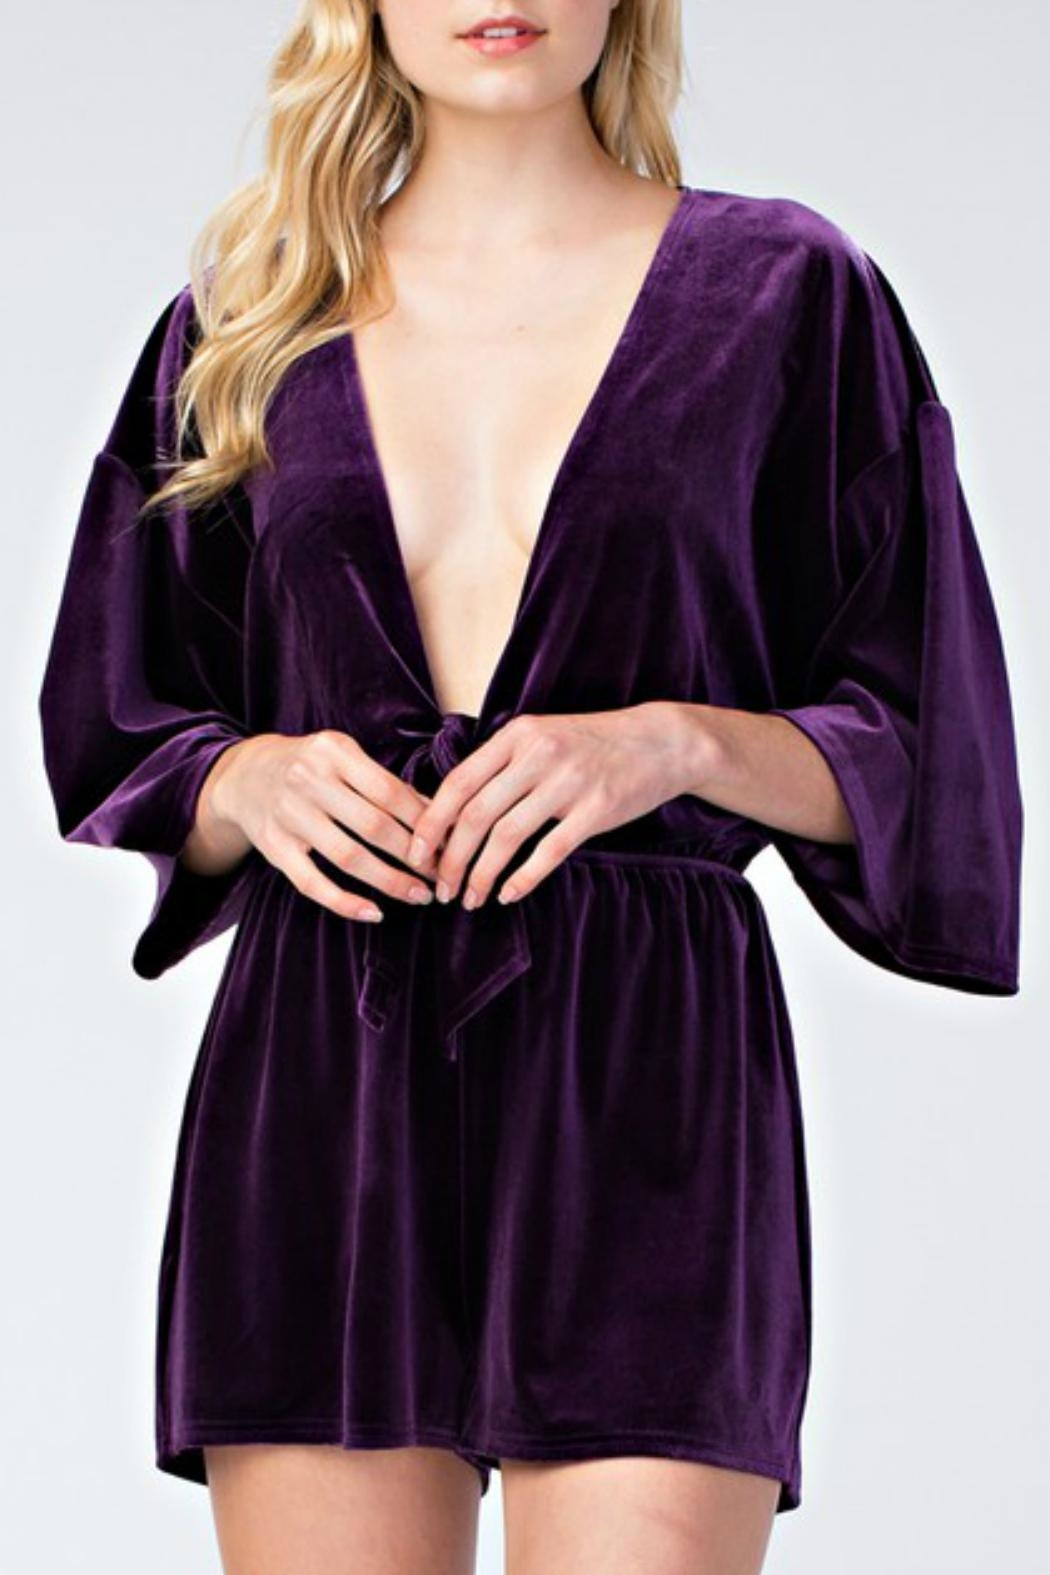 honey belle Velvet Plunge Romper - Main Image